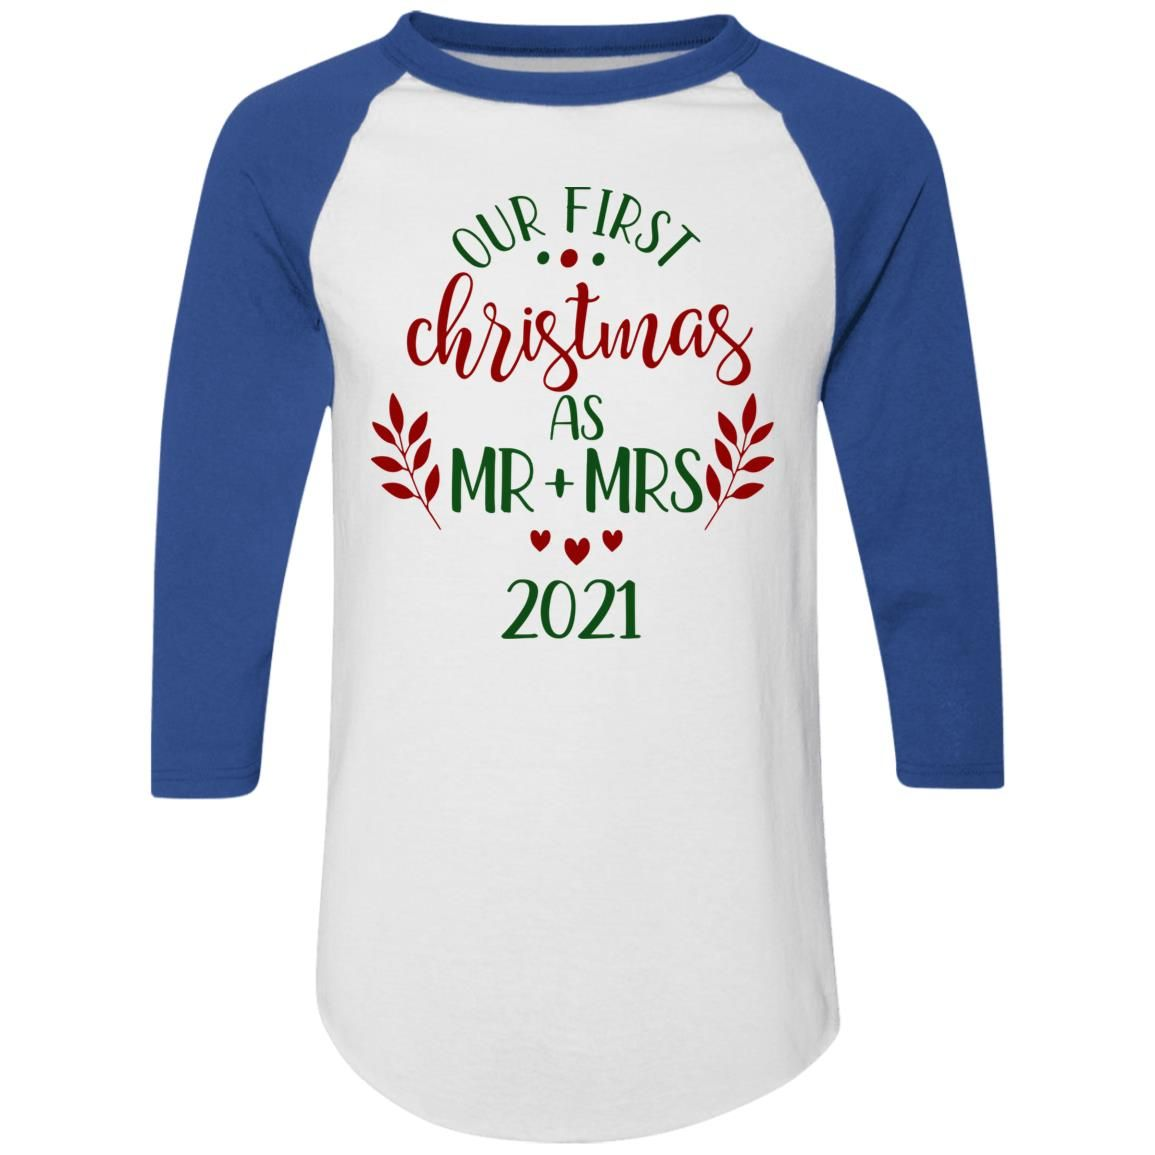 """2021 First Married Christmas Long-Sleeve Shirt Ideas   Best Xmas Shirt Gifts For Women Men 2021 First Married Christmas Long-Sleeve Shirt Ideas   Best Xmas Shirt Gifts For Women Men Christmas shirts are traditionally an amazinggift idea for your loved ones. Also, you may want to wear a Christmas shirt to celebrate your holiday with a little more joy. It's that time of the year! Let your """"2021 First Married Christmas Long-Sleeve Shirt Ideas   Best Xmas Shirt Gifts For Women Men"""" reveal how exci"""